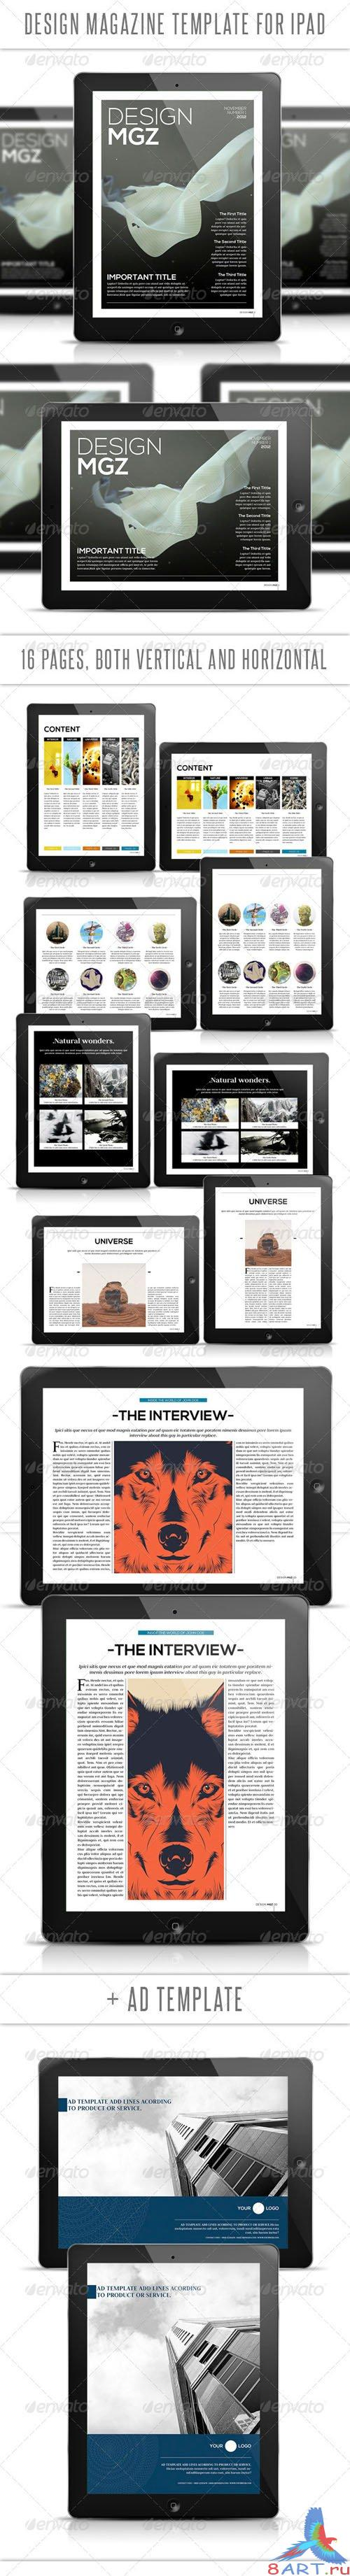 GraphicRiver - Design Tablet Magazine Template 3267527